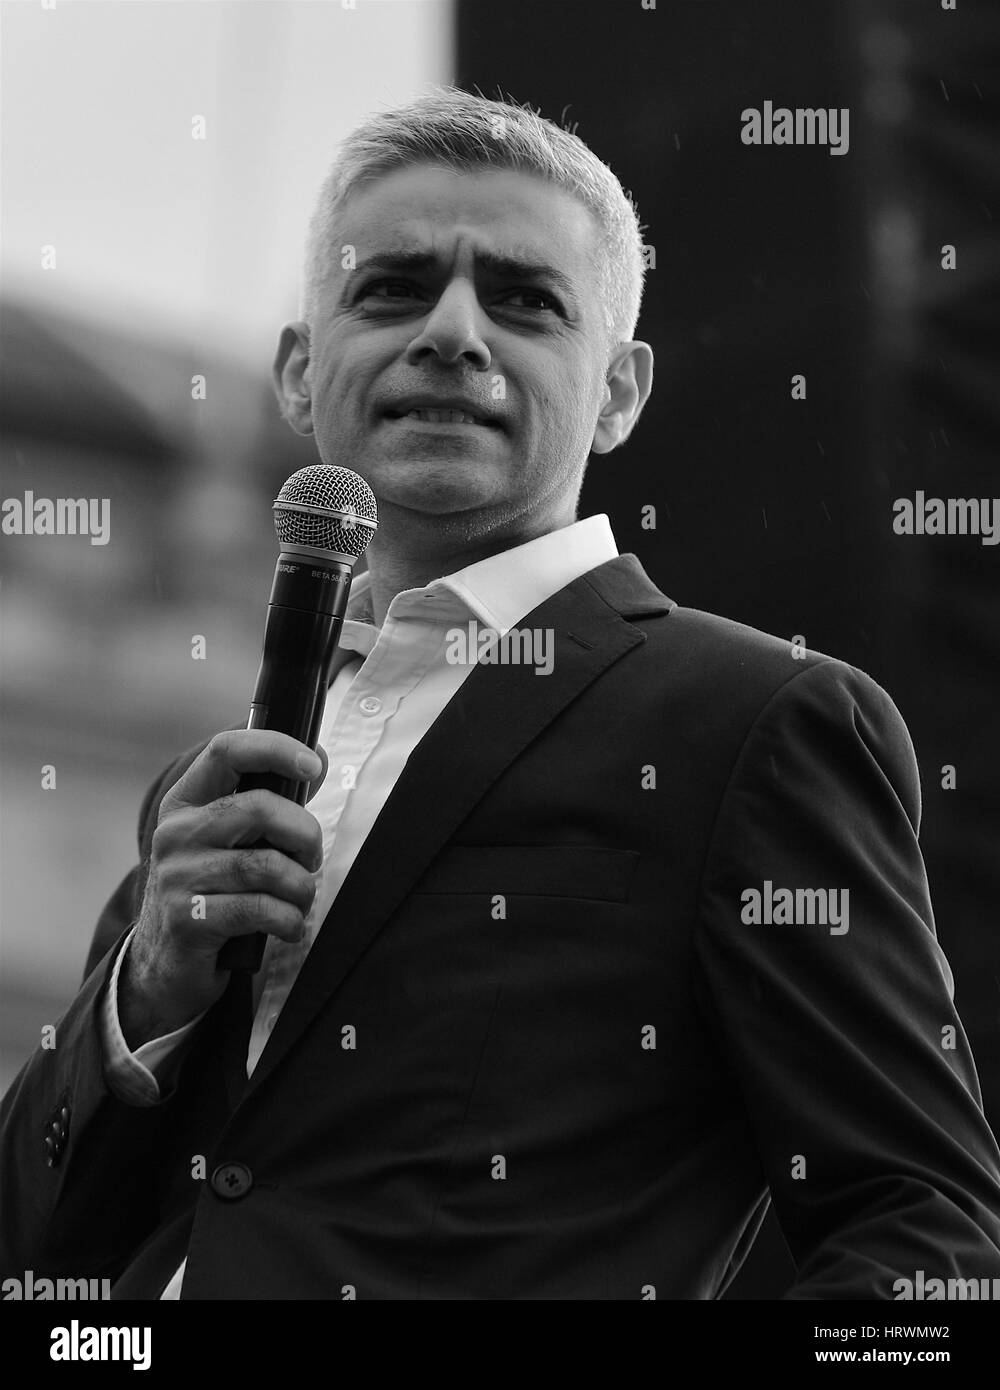 London, UK, 26, 02, 2017: The Mayor of London Sadiq Khan ( Image digitally altered to monochrome) attends a free - Stock Image